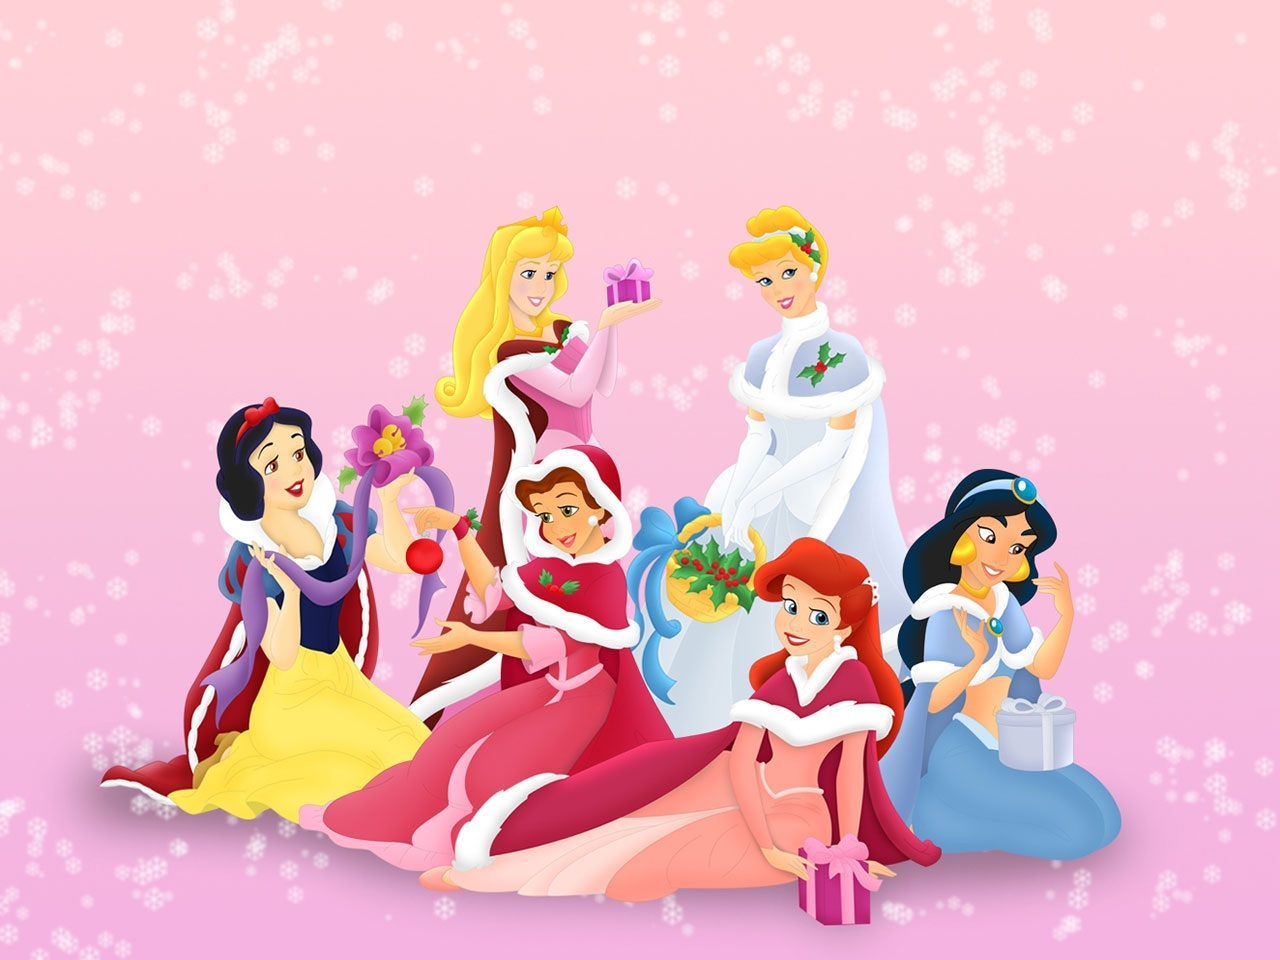 disney princess christmas wallpaperdisney princesses christmas wallpaper px disney muz xu 1293148406jpg